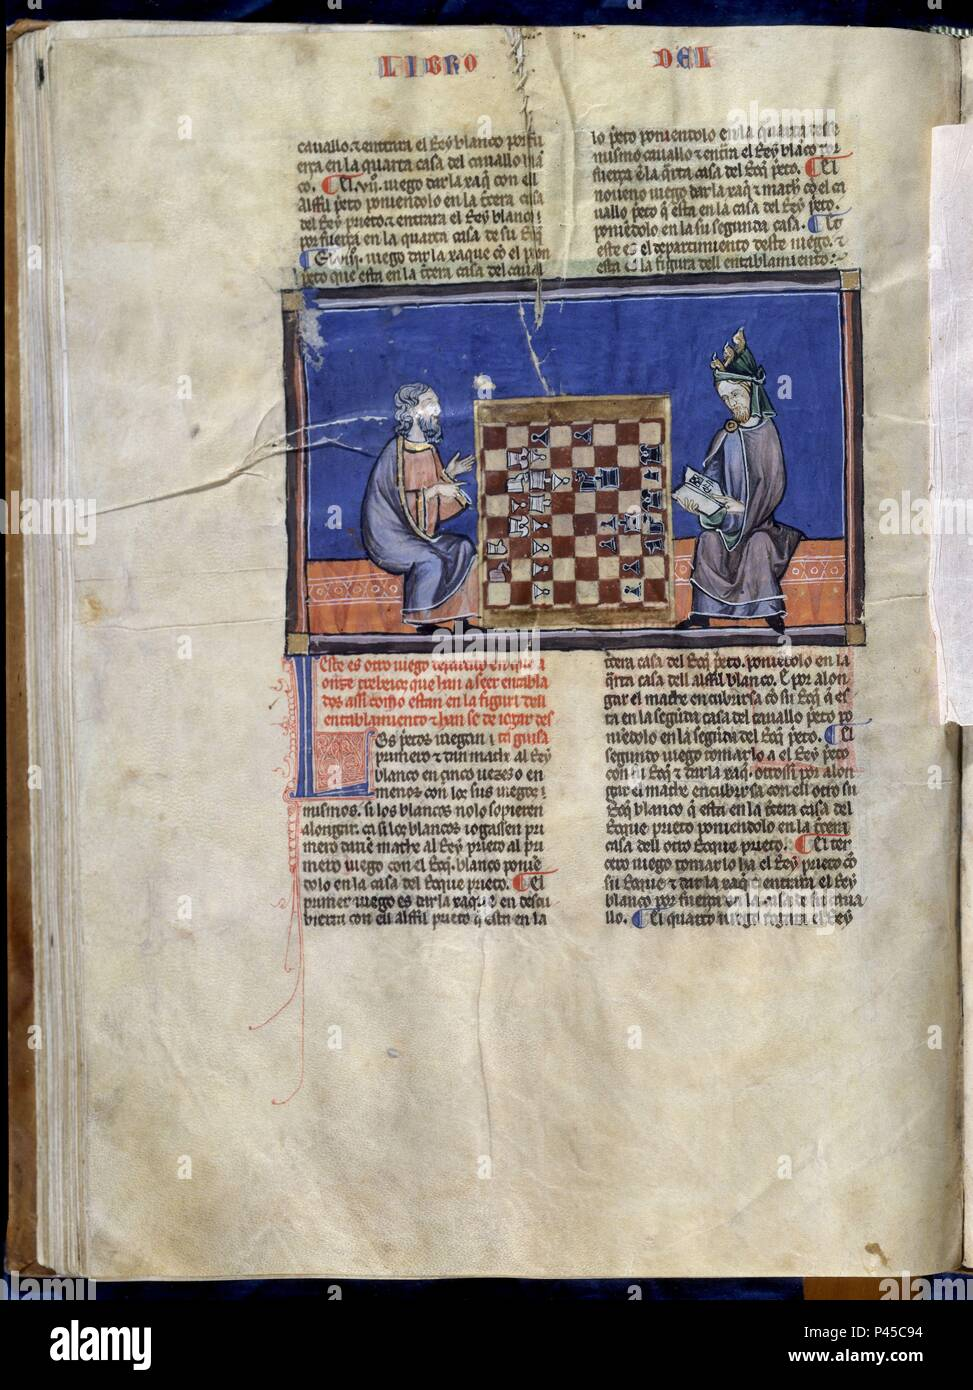 LIBRO DE JUEGOS O LIBRO DEL AJEDREZ DADOS Y TABLAS - 1283 - FOLIO 61V - DOS HOMBRES JUGANDO AL AJEDREZ -  MANUSCRITO GOTICO. Author: Alfonso X of Castile the Wise (1221-1284). Location: MONASTERIO-BIBLIOTECA-COLECCION, SAN LORENZO DEL ESCORIAL, MADRID, SPAIN. Stock Photo